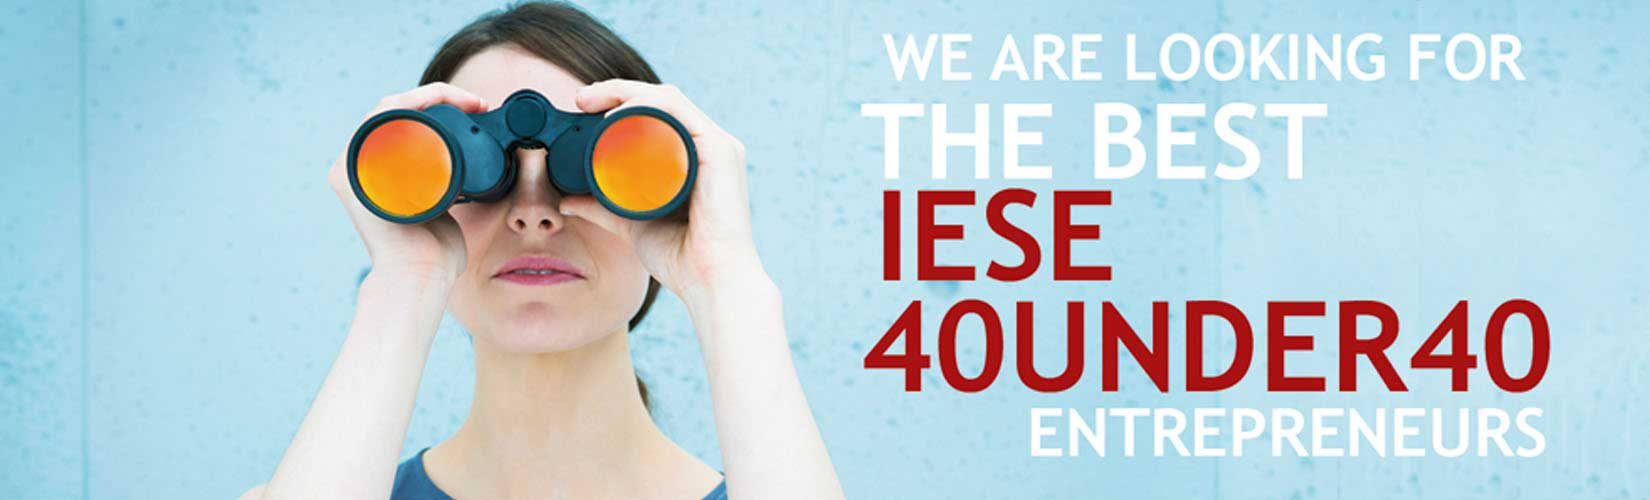 Entrepreneurship and Innovation Center (EIC) | IESE Business School